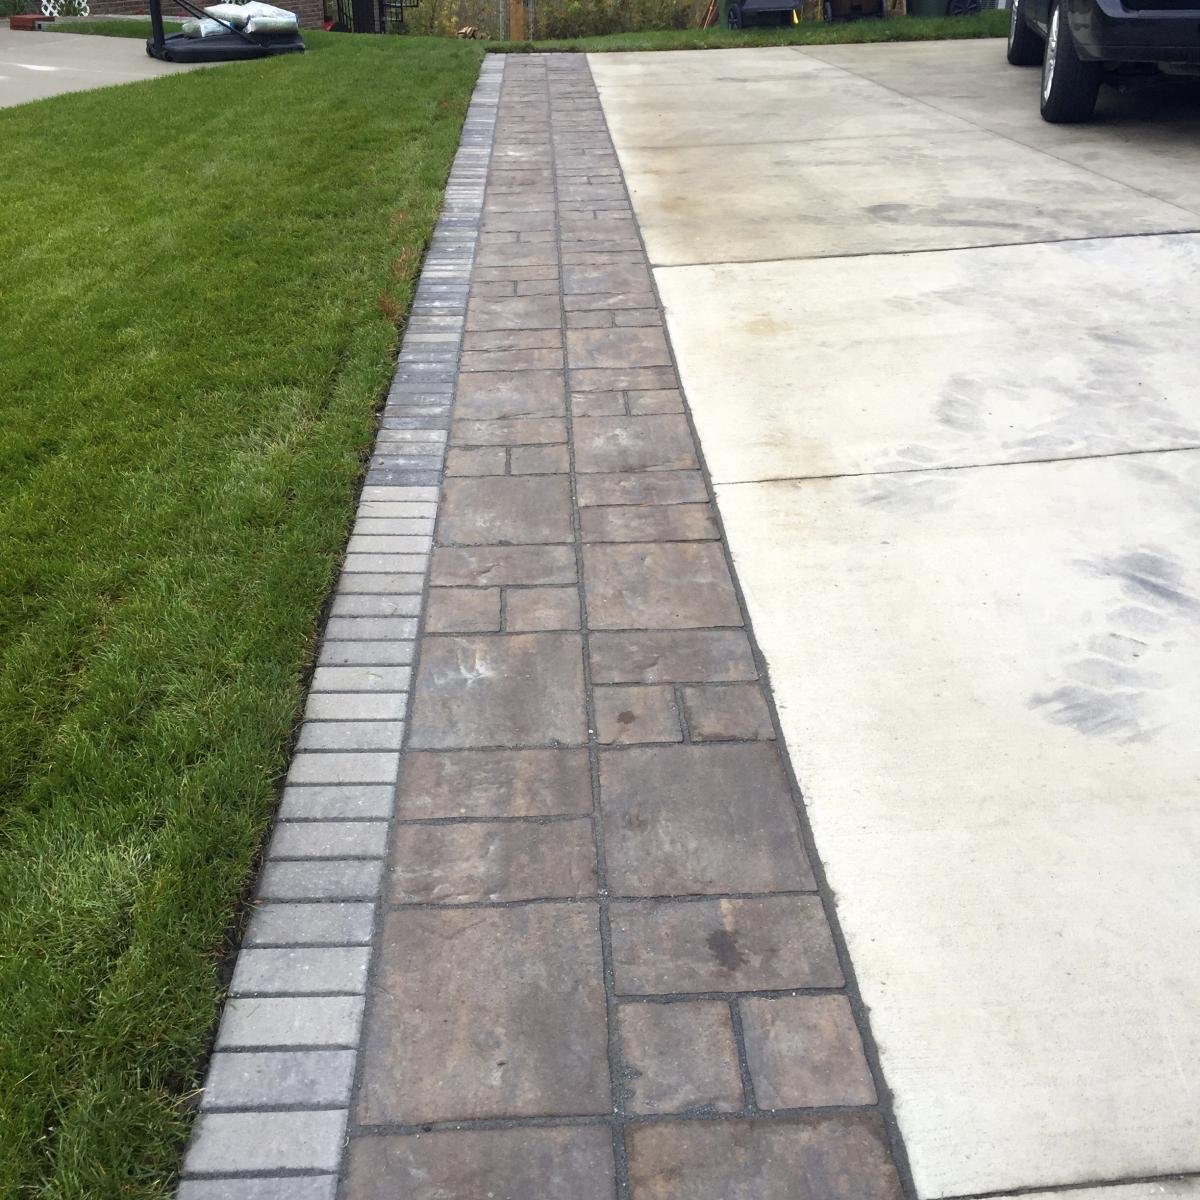 A beautiful look to the entryway of your home brick driveways enhance the look of the houses where they are installed